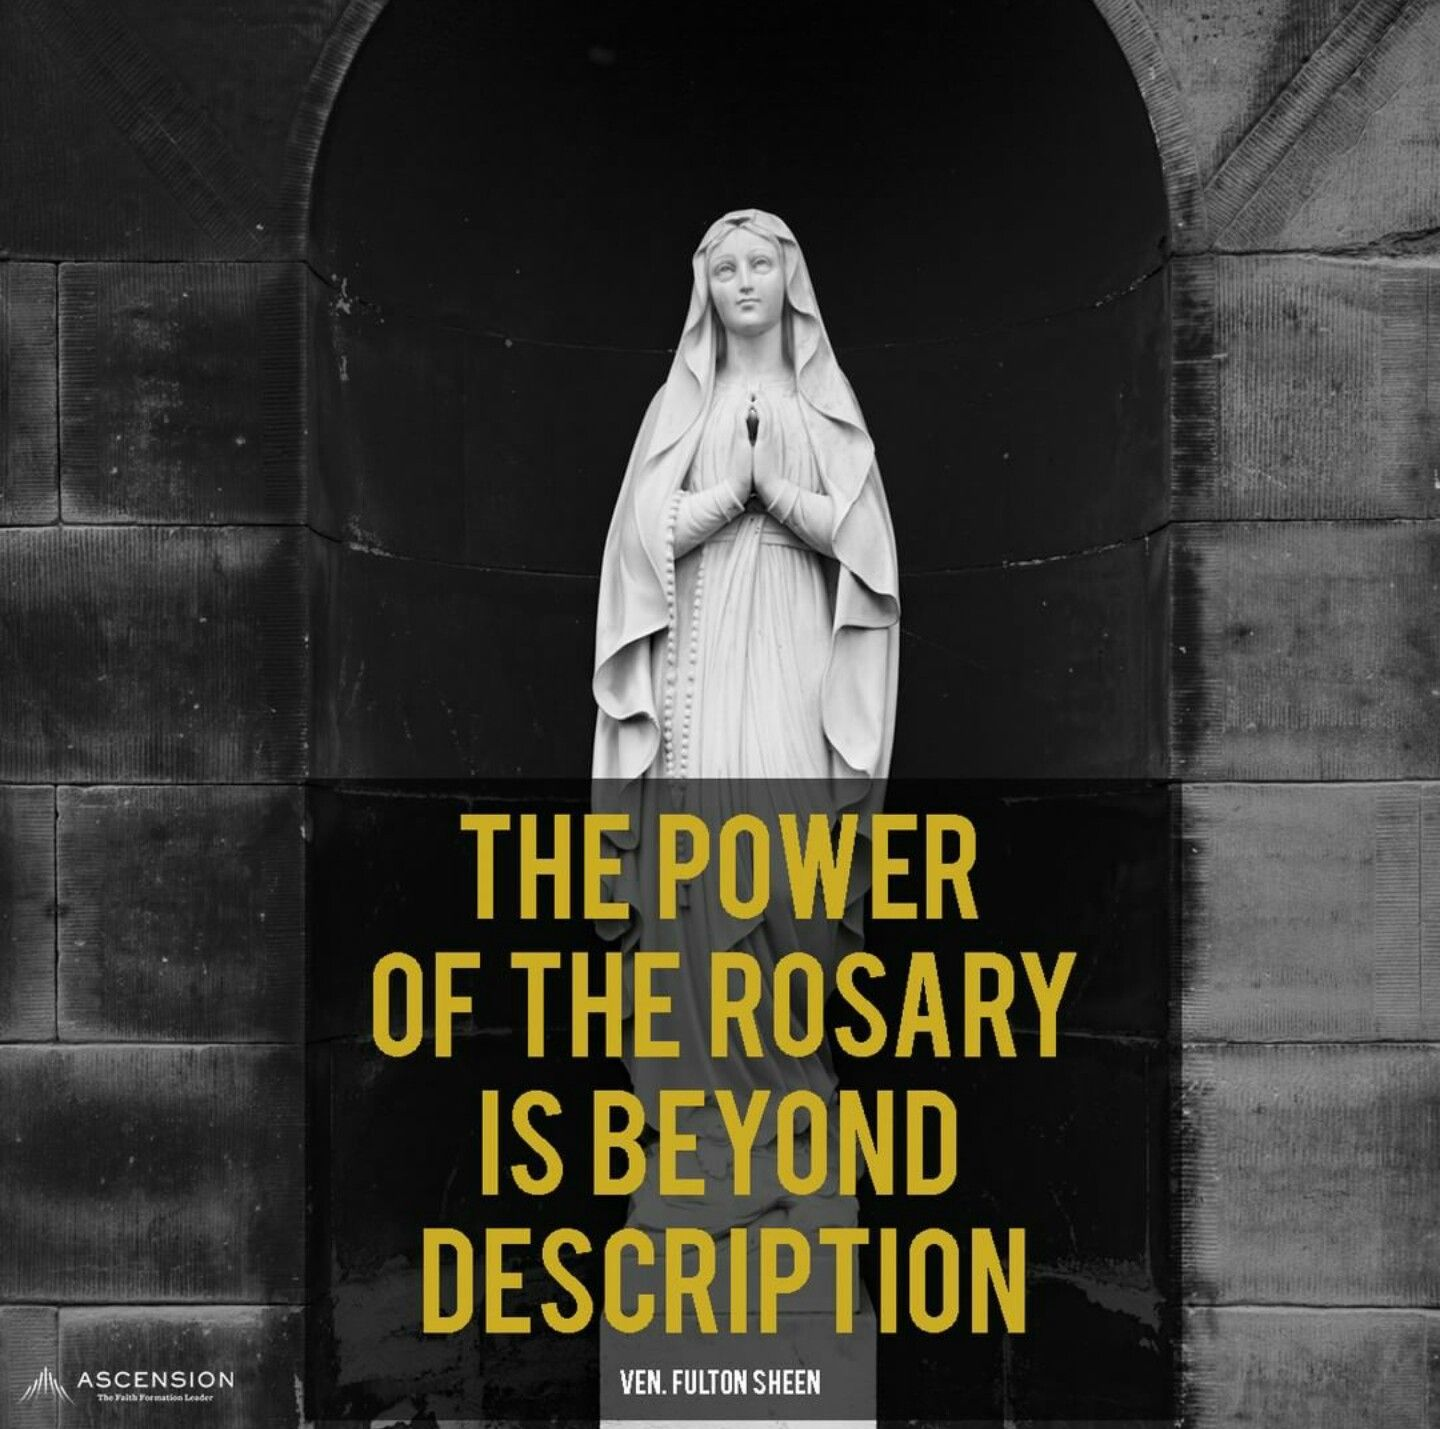 The Power of The Rosary Fulton sheen, Movie posters